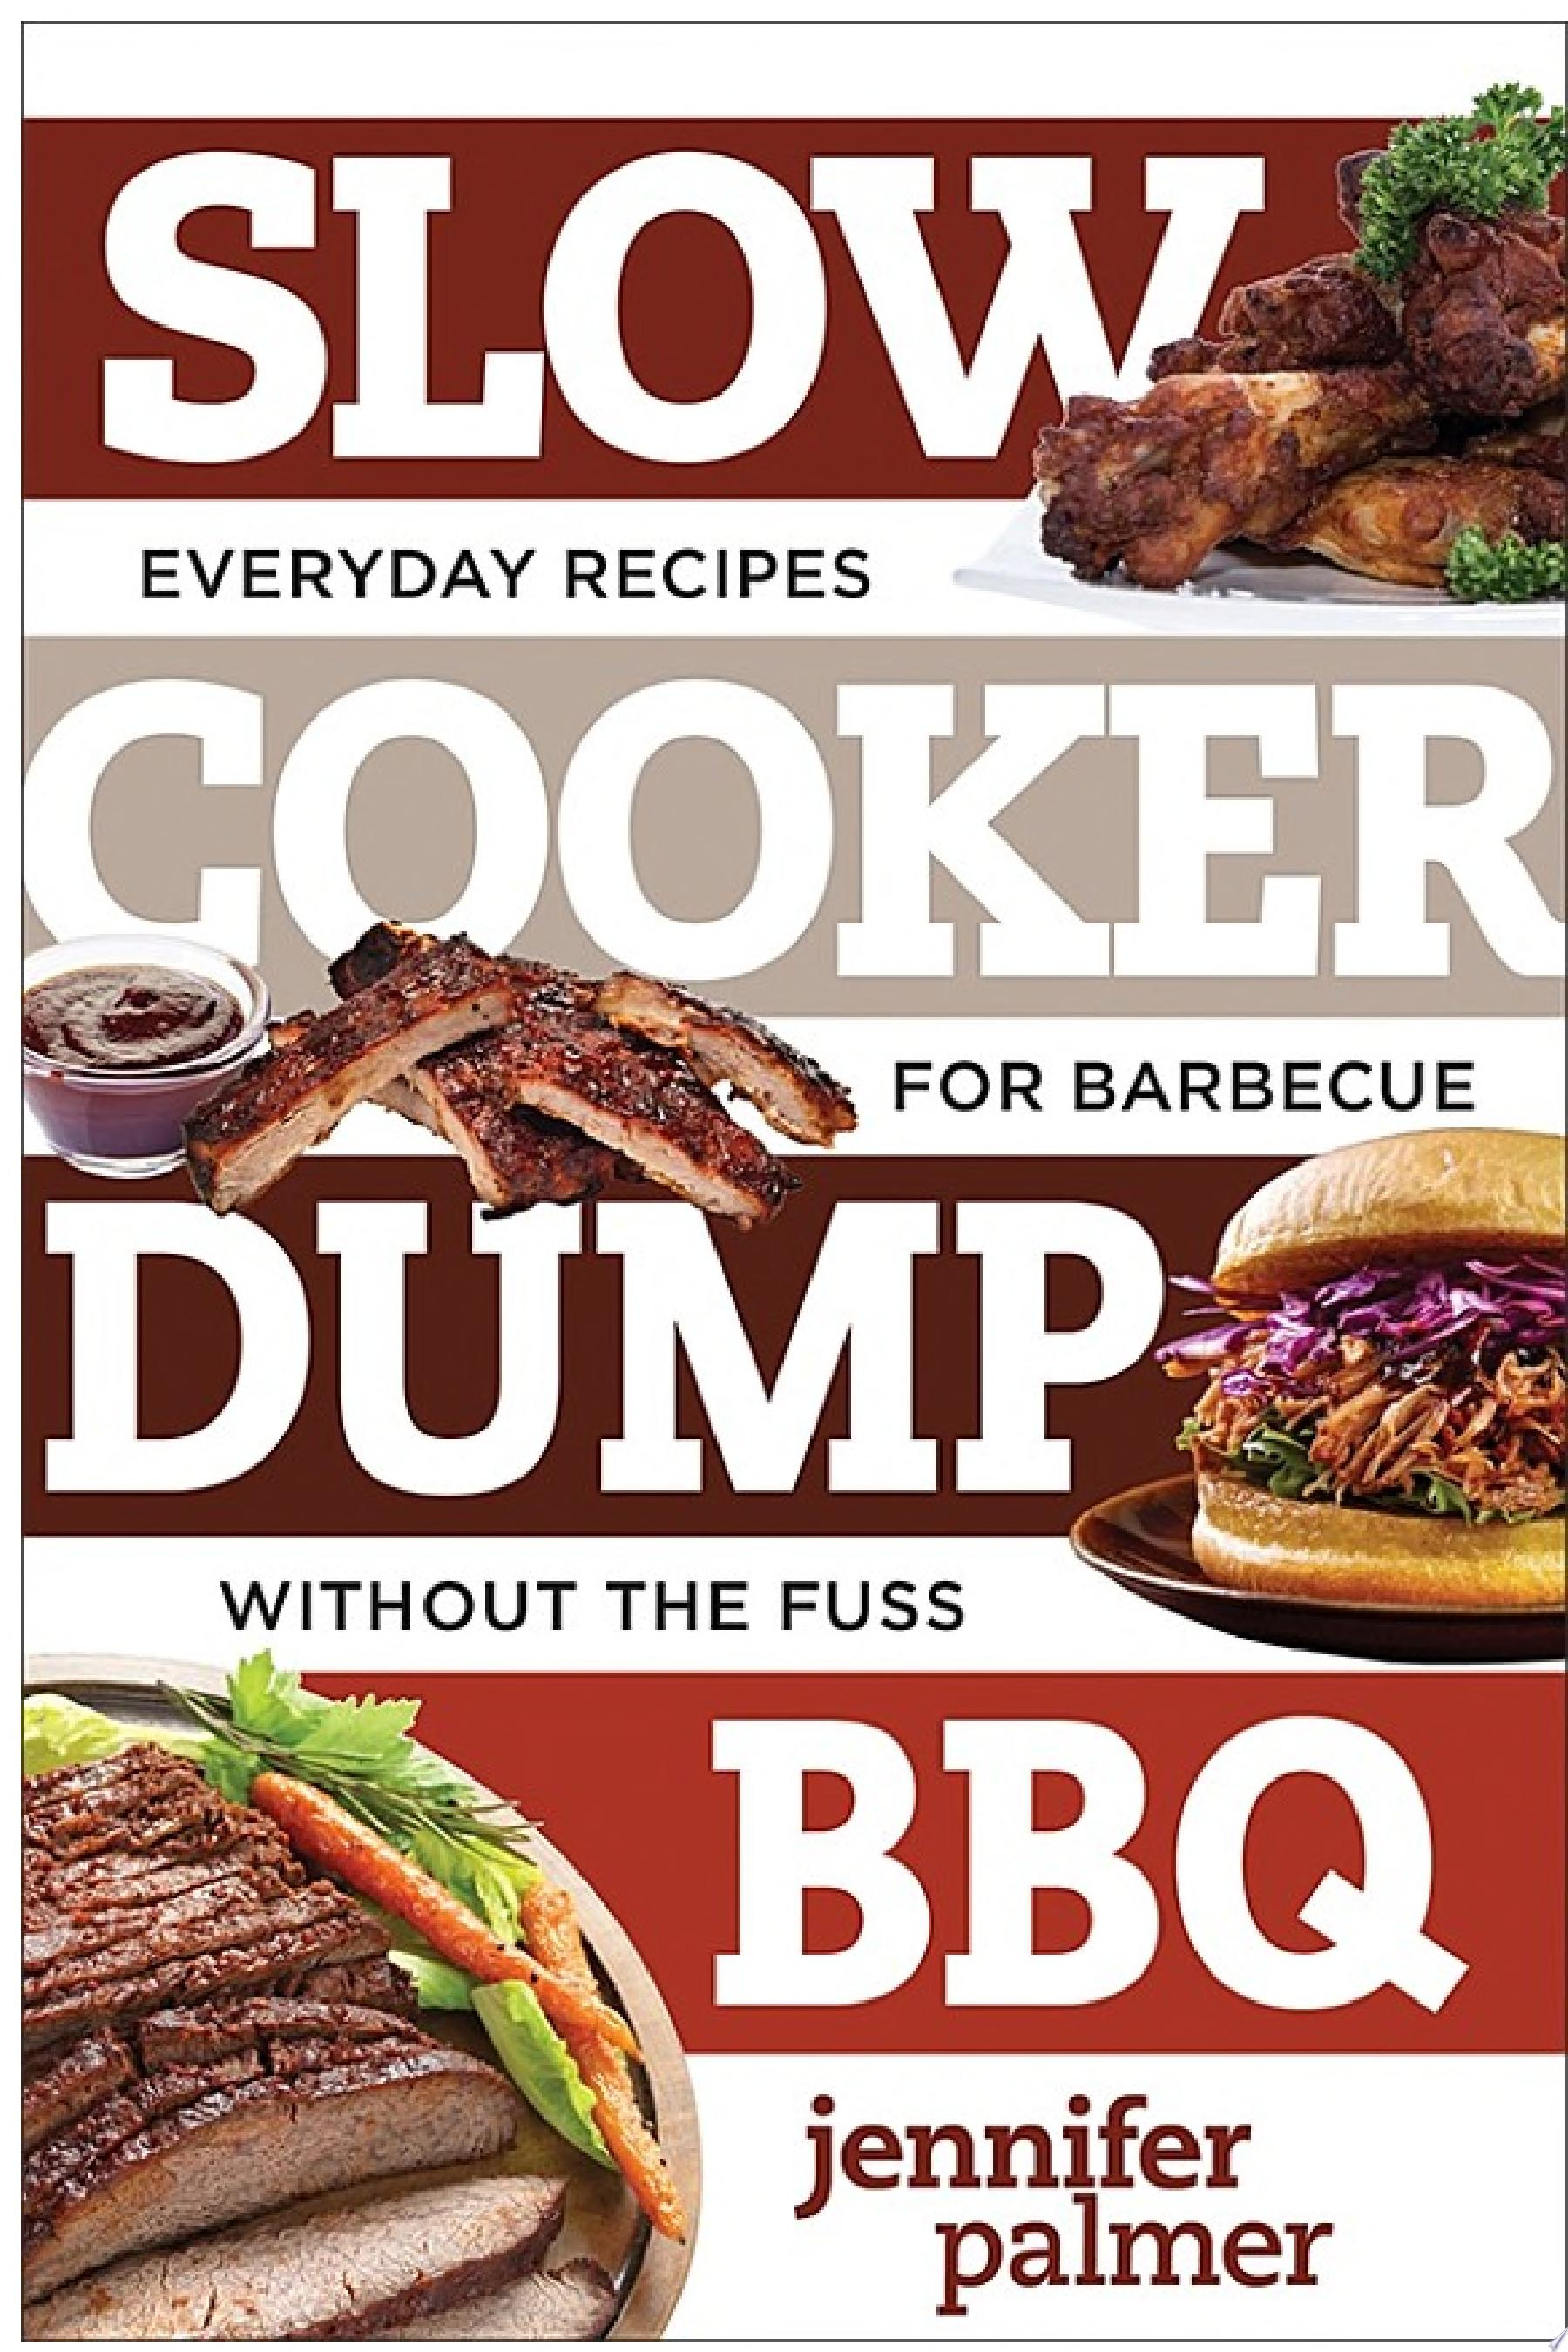 Slow Cooker Dump BBQ  Everyday Recipes for Barbecue Without the Fuss  Best Ever